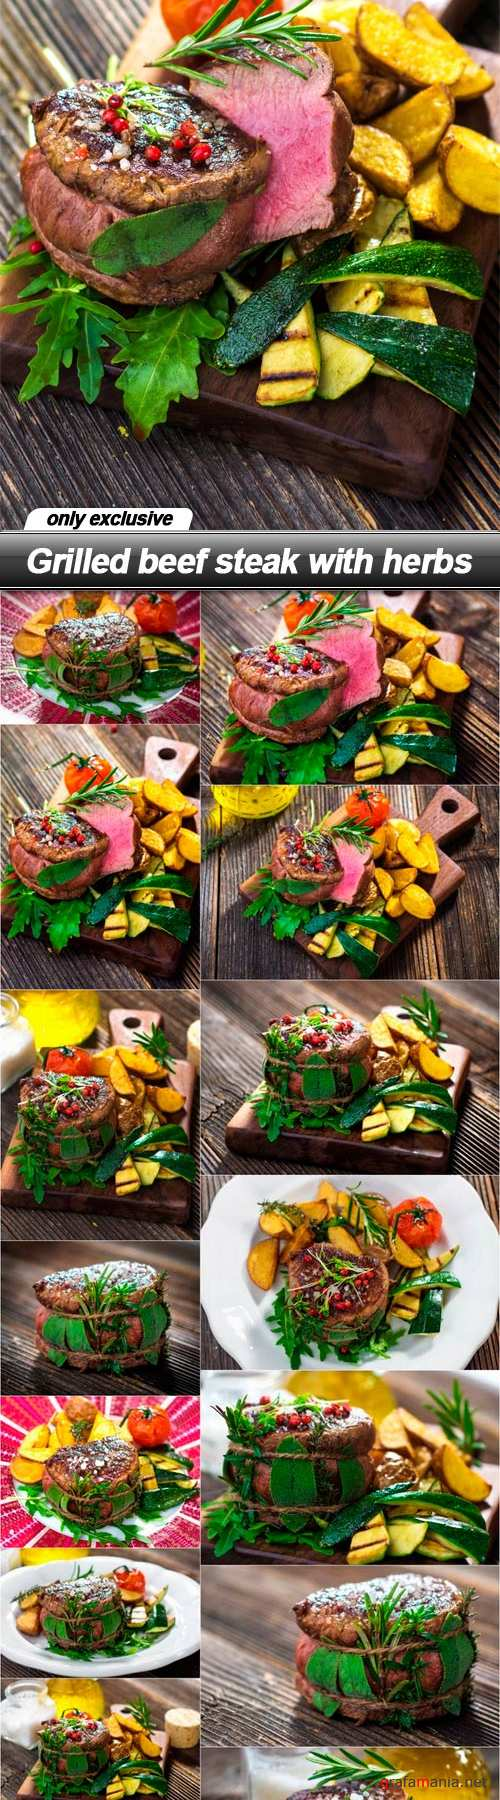 Grilled beef steak with herbs - 15 UHQ JPEG